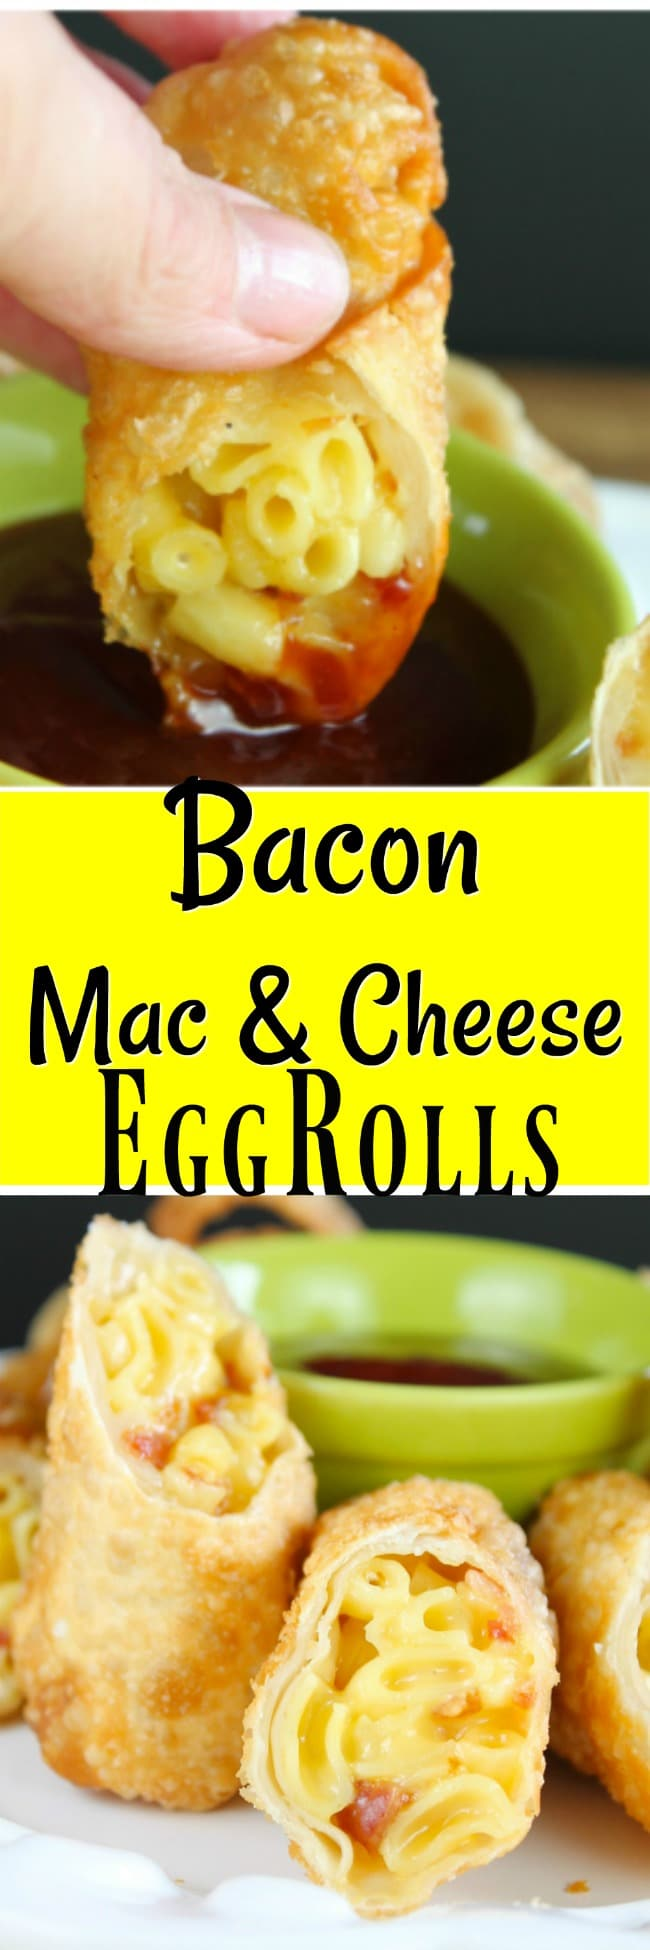 Bacon Mac & Cheese Eggrolls